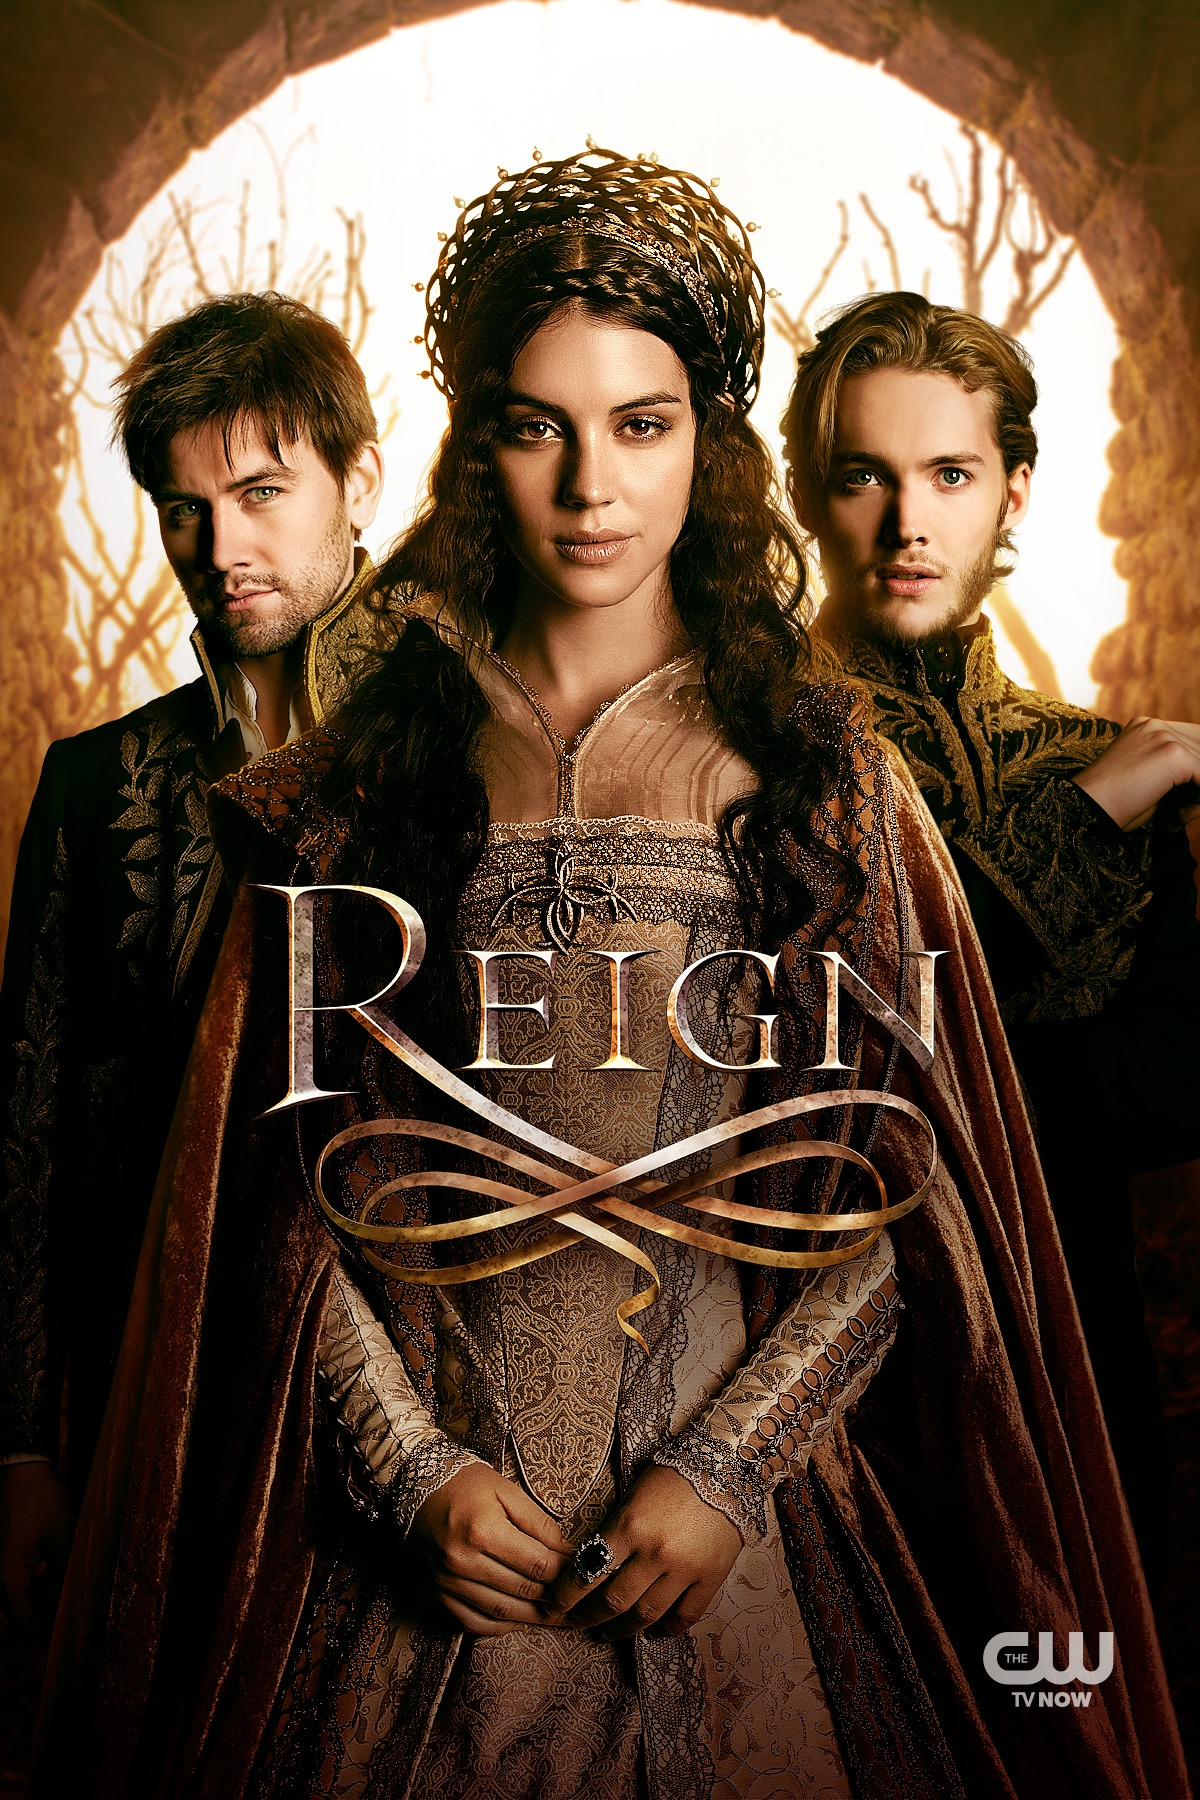 http://vignette2.wikia.nocookie.net/reign-cw/images/a/ae/Reign_trio_poster.jpg/revision/latest?cb=20131017004529